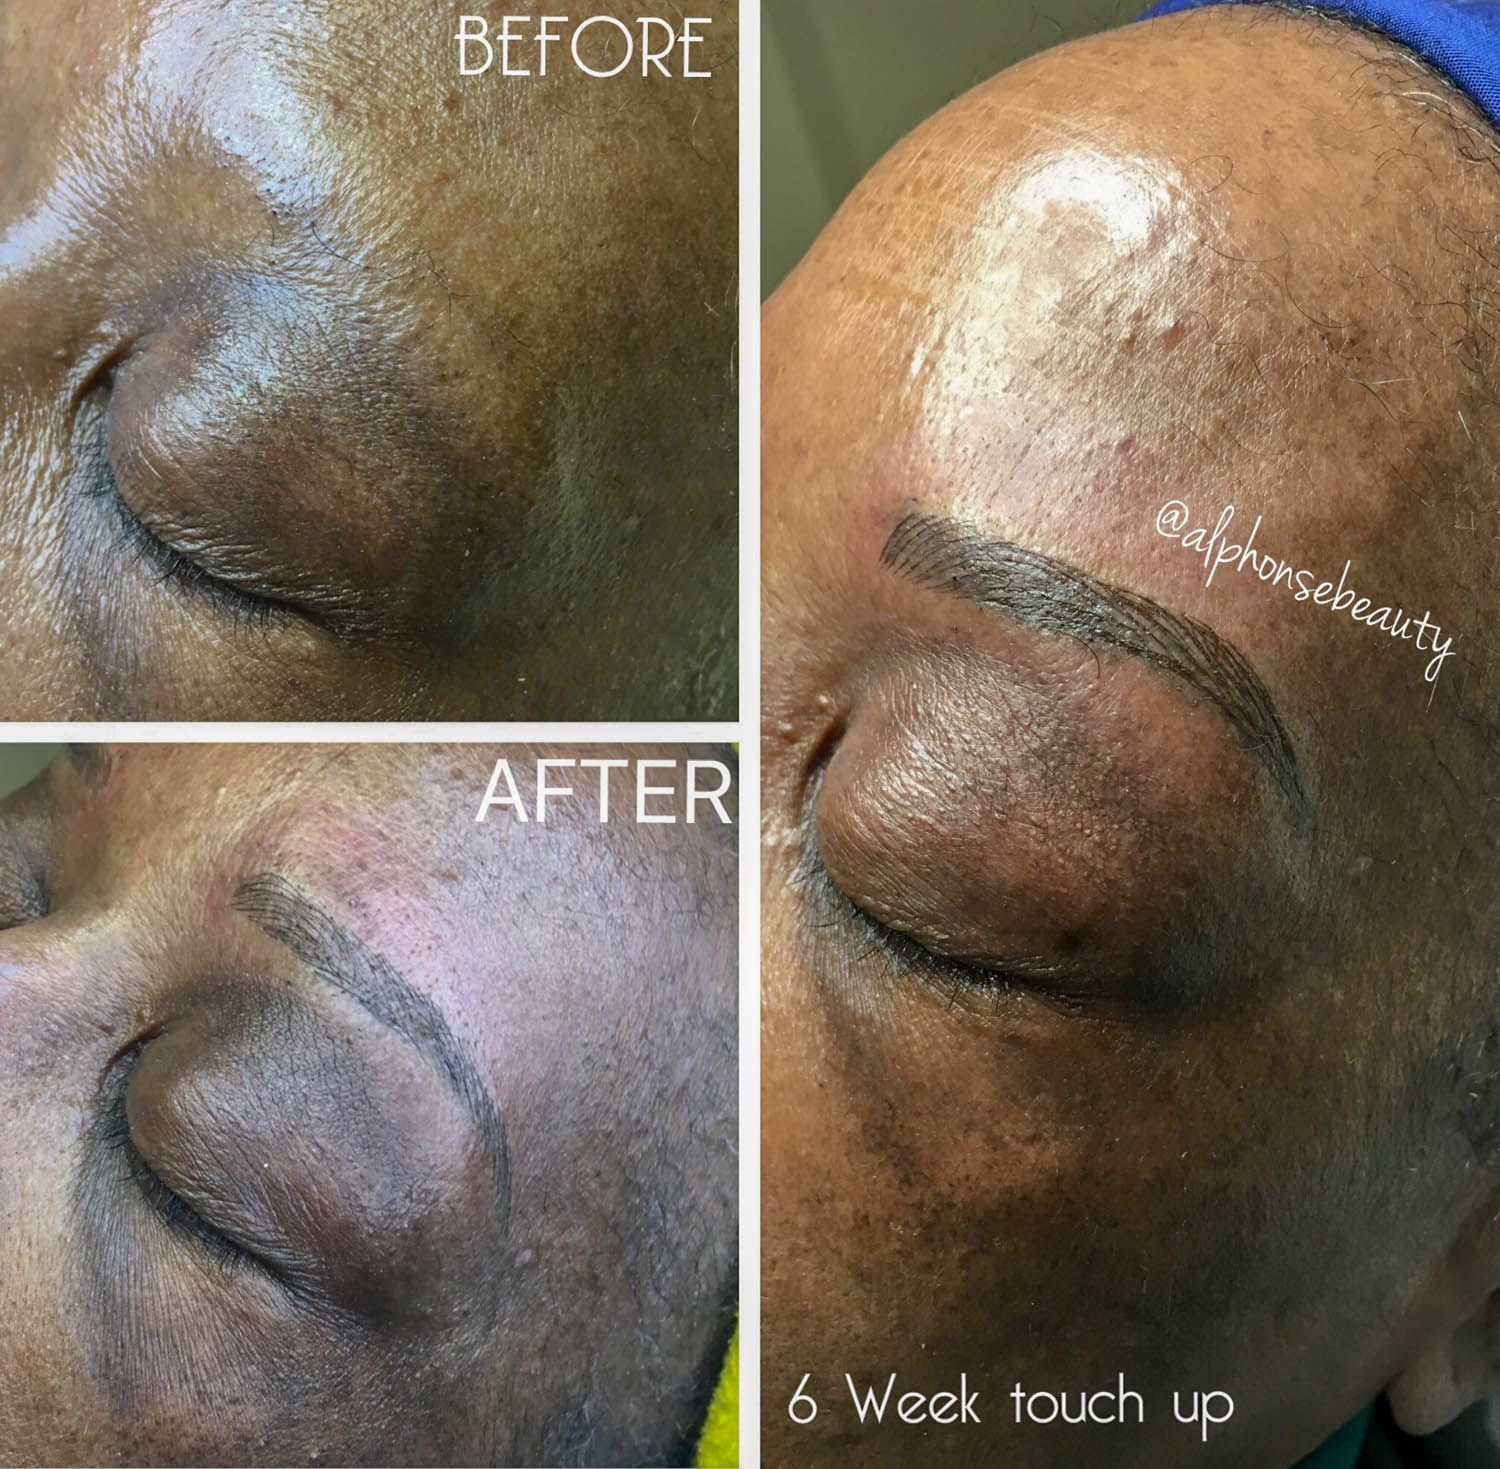 Results from Eyebrow Microblading in Metro Detroit - Alphonse Beauty Microblading Studio